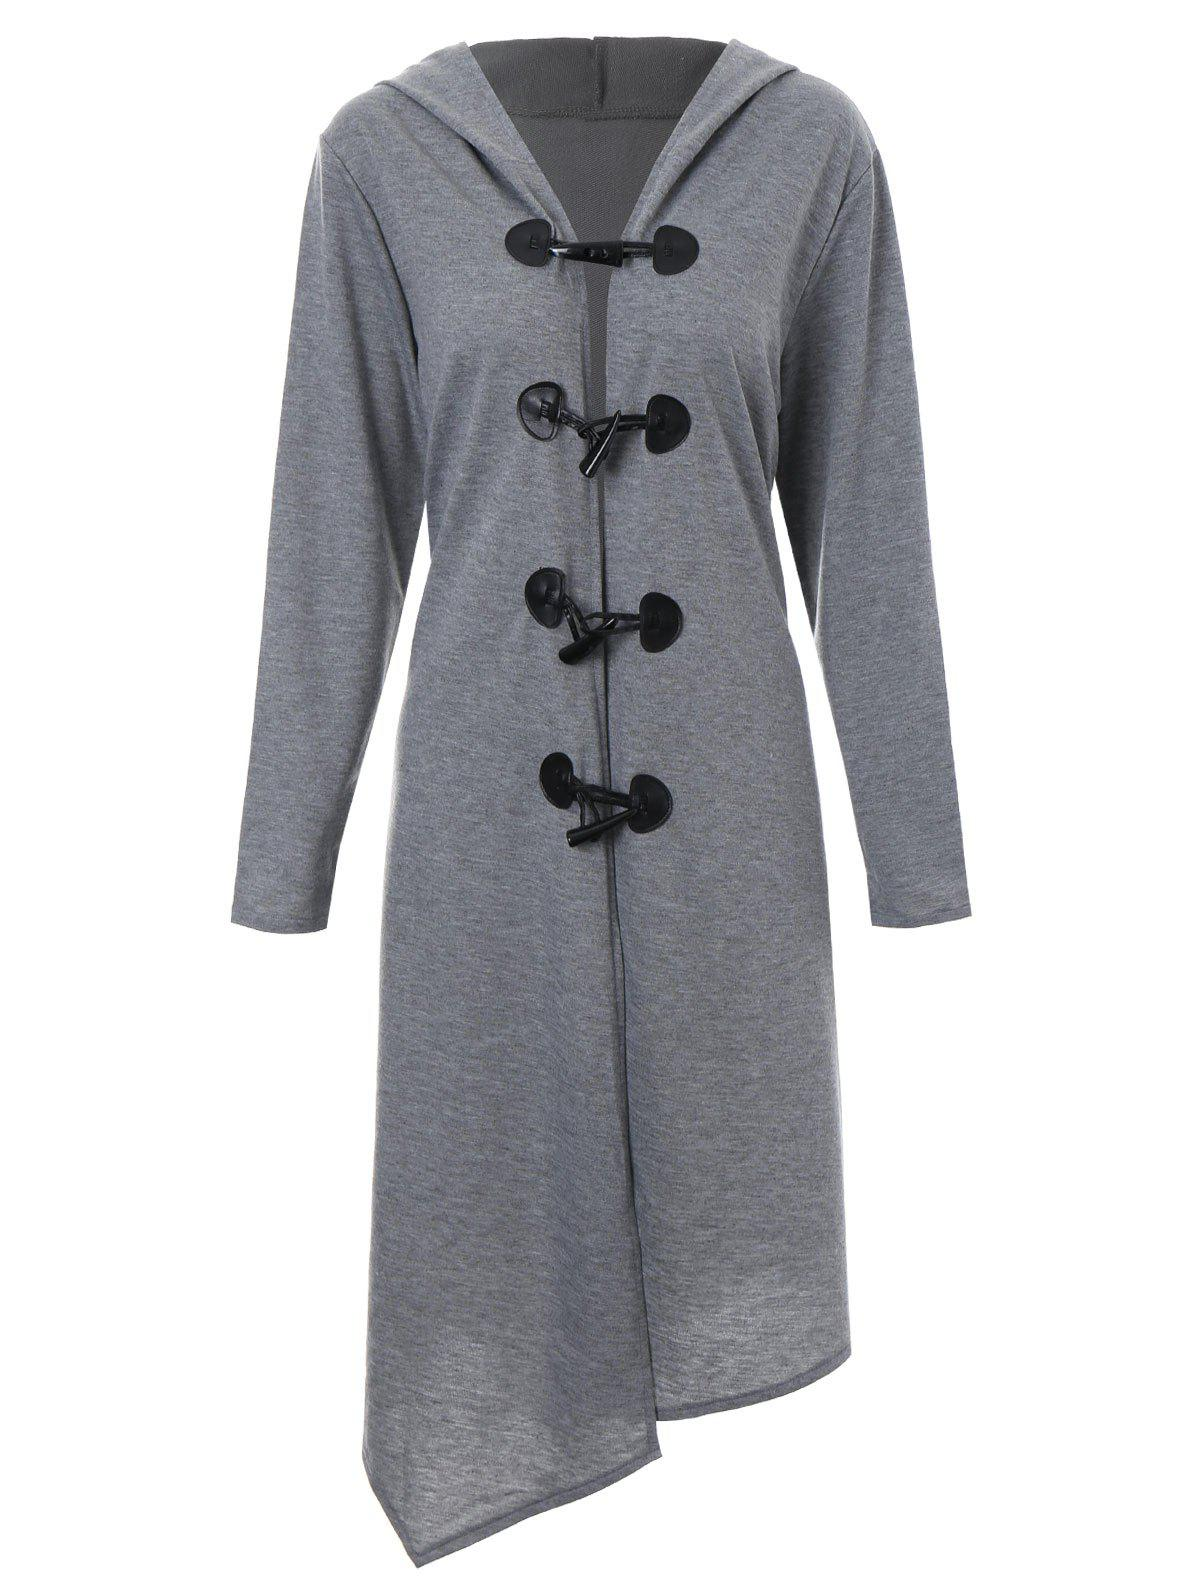 Plus Size Asymmetric Long Duffle Cloak Coat - GRAY 2XL